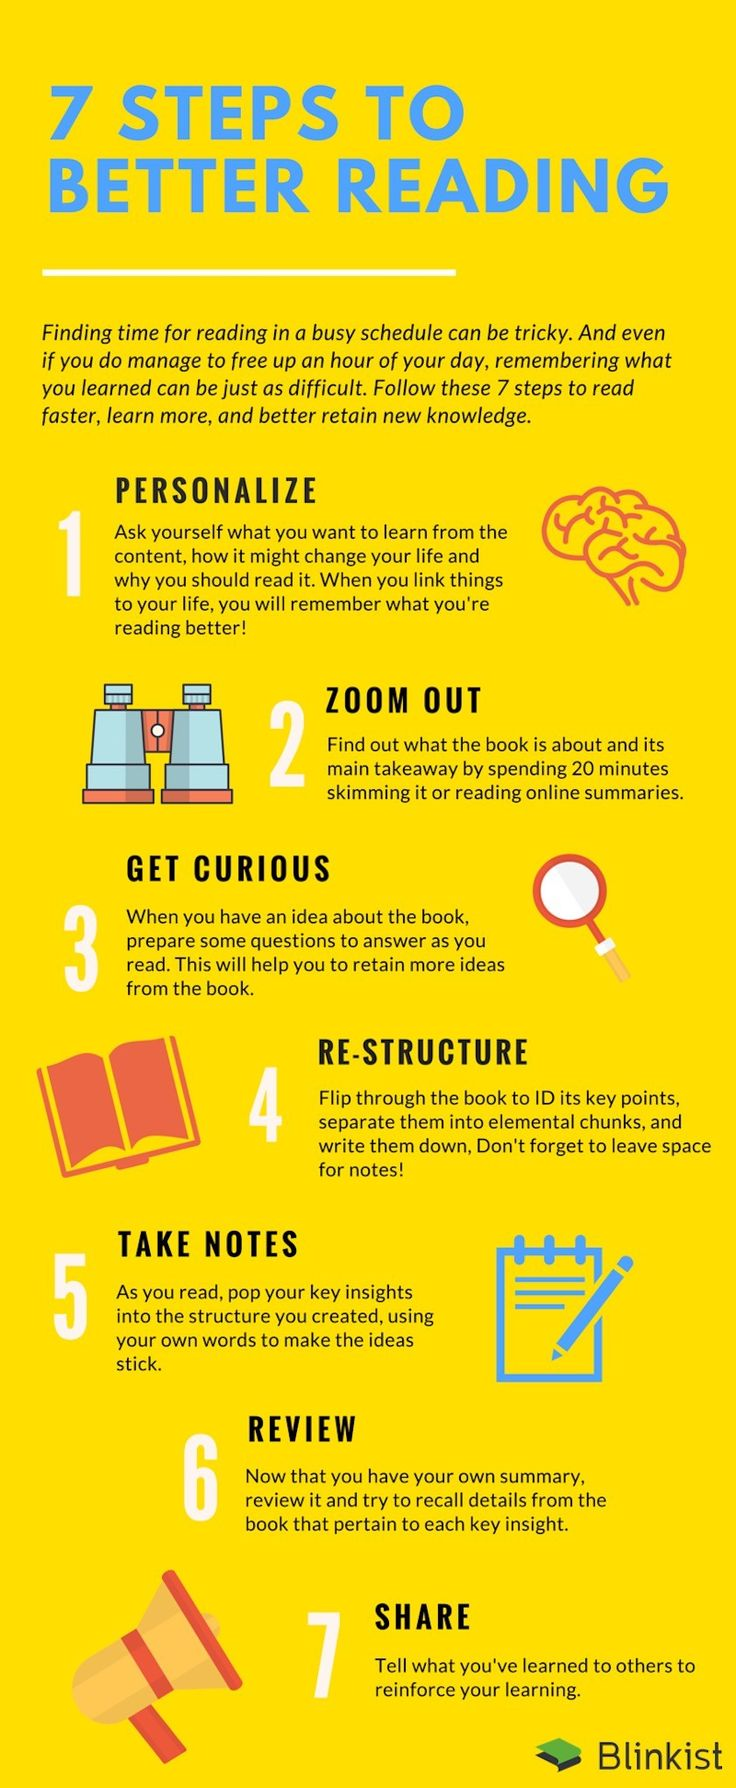 #infographic with tips to better #reading: personalize, get curious, take notes, share